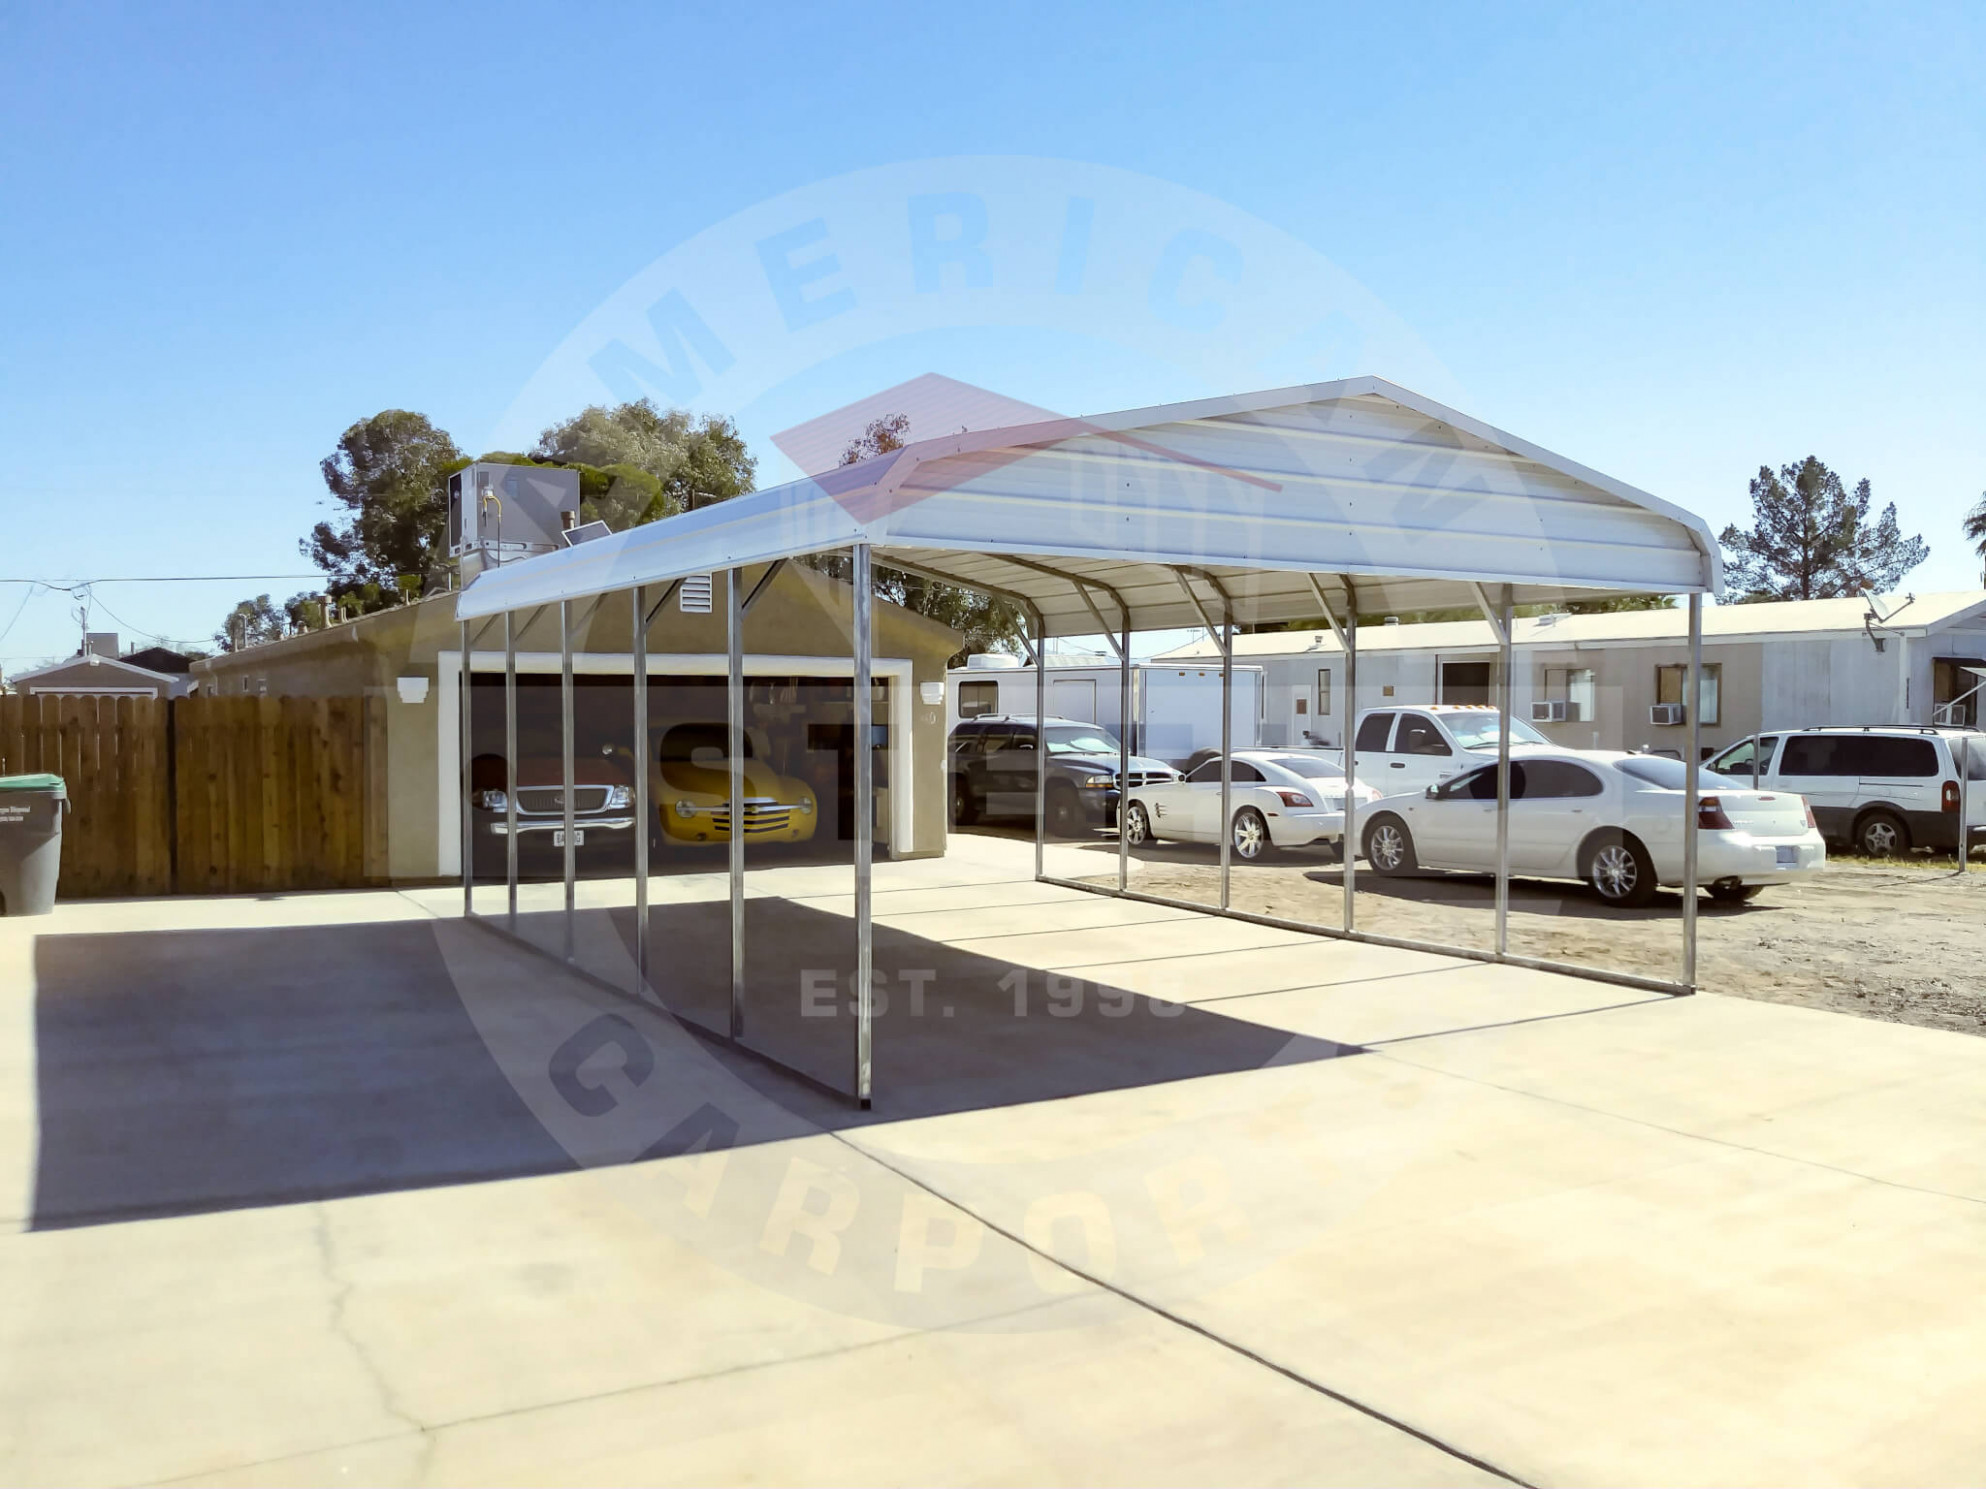 Simple Is Enough American Steel Carports, Inc